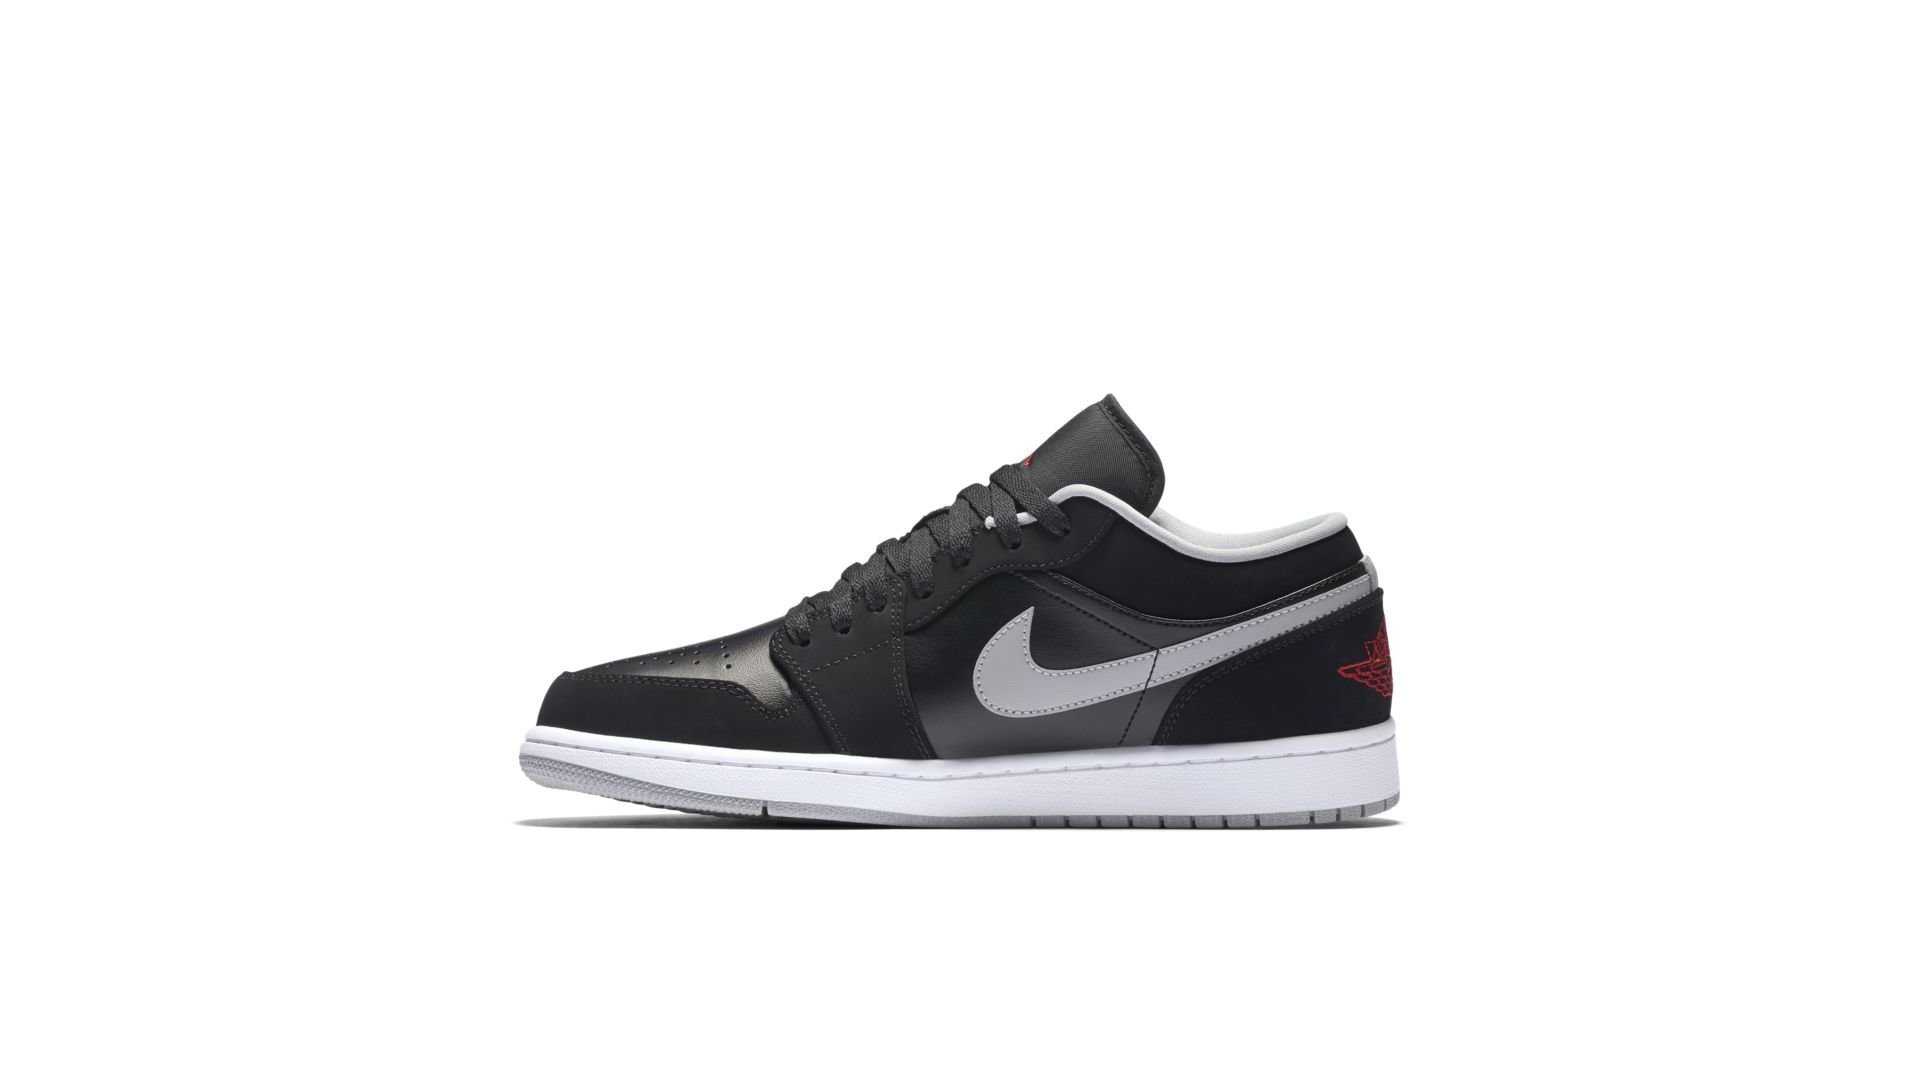 Jordan 1 Low Black Wolf Grey (553558-032)